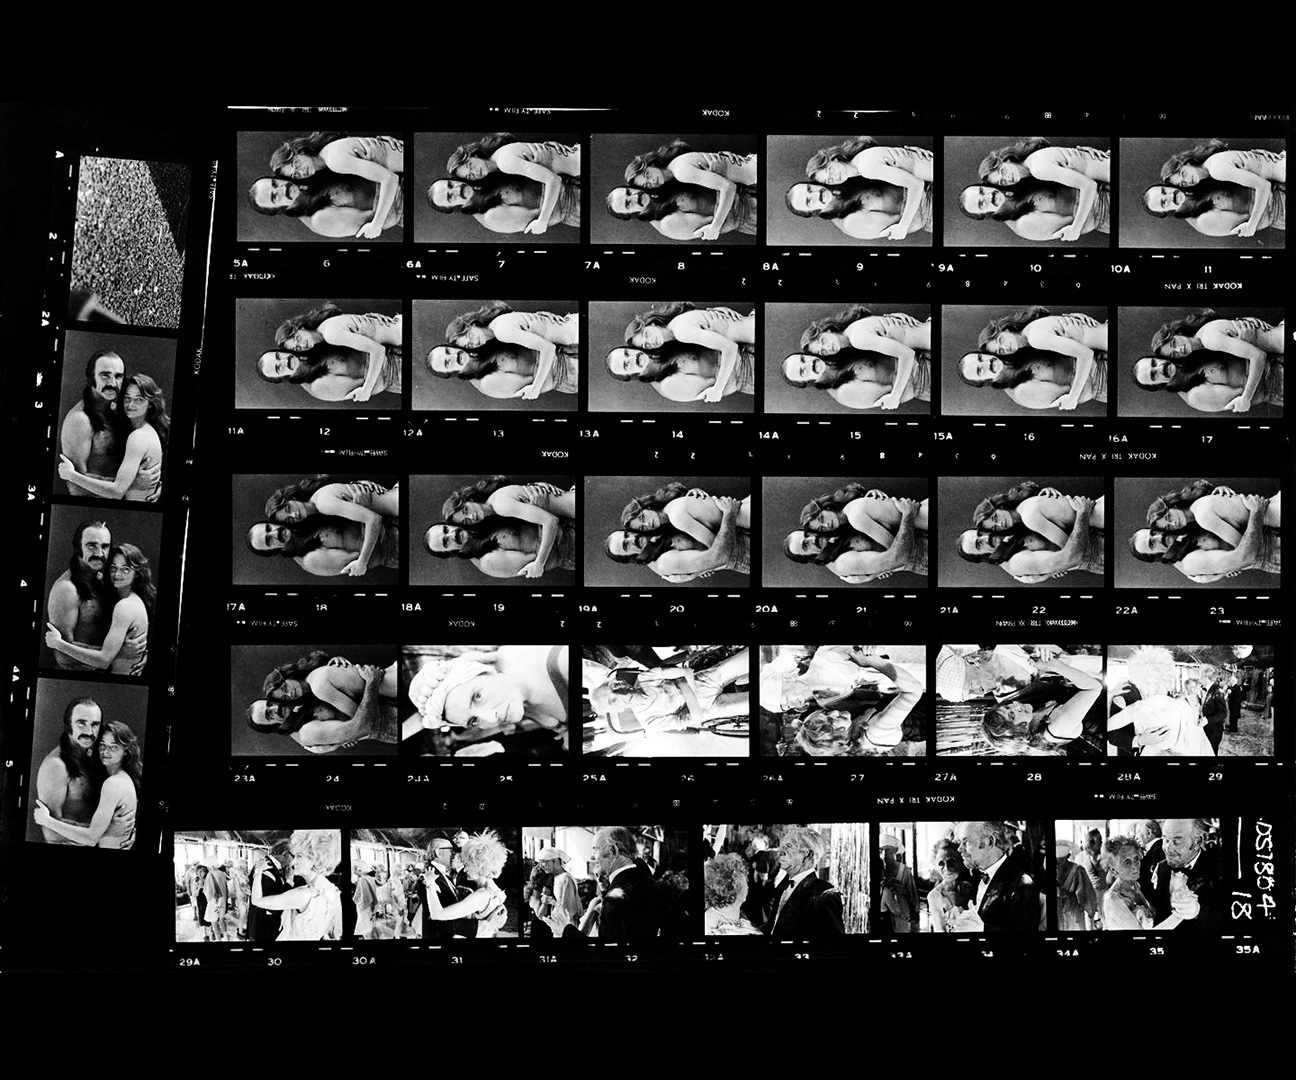 Zardoz-contact sheet-A Year In The Country